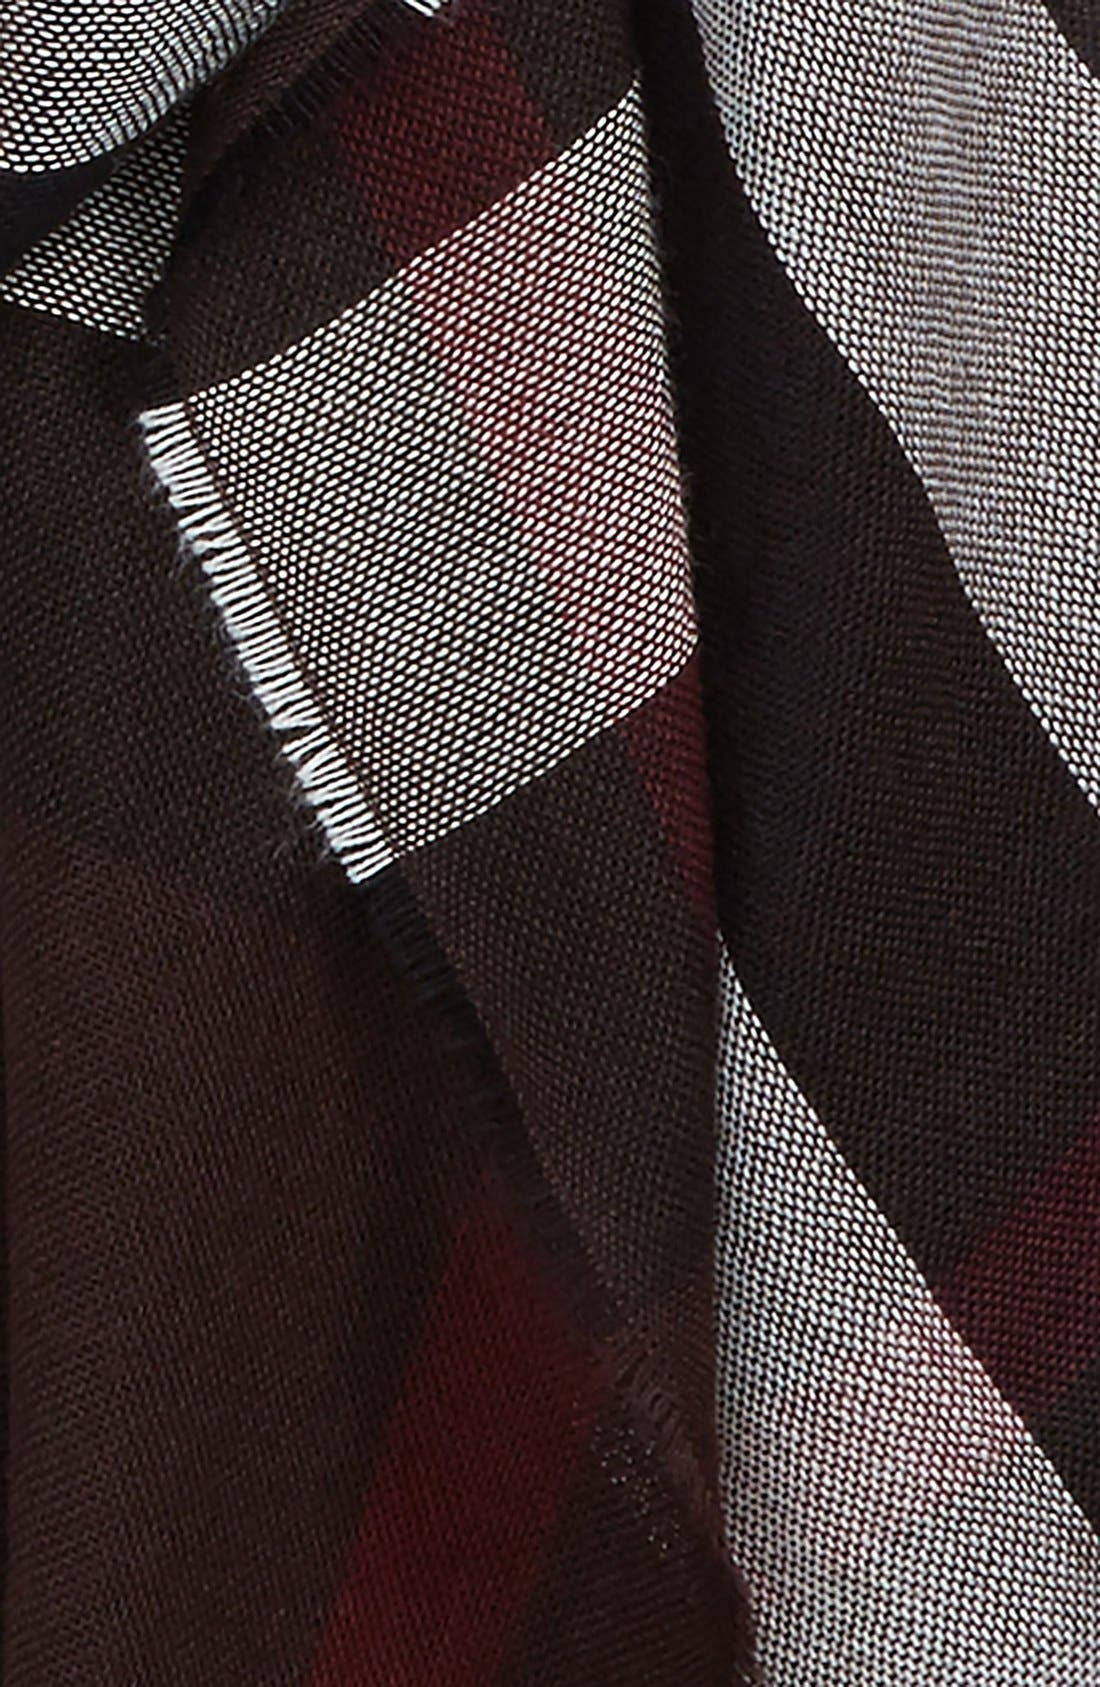 Check Wool & Cashmere Scarf,                             Alternate thumbnail 3, color,                             602